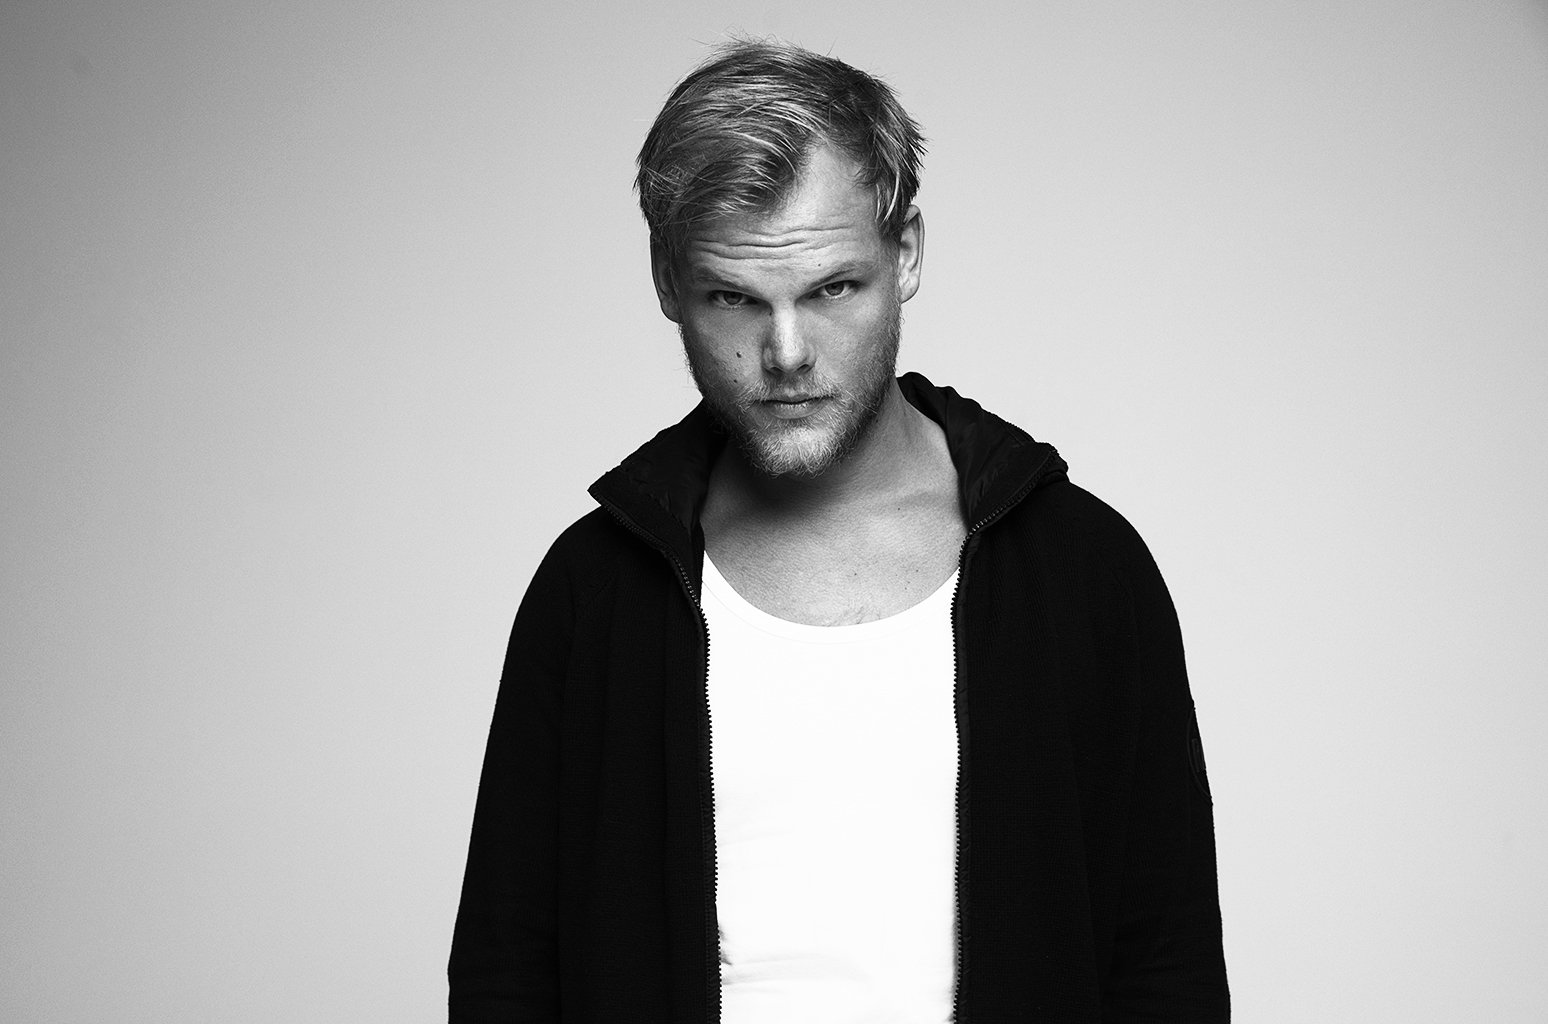 Swedish DJ Avicii dead at 28 https://t.co/vb9ESB8x5p https://t.co/fJDfPM38iO